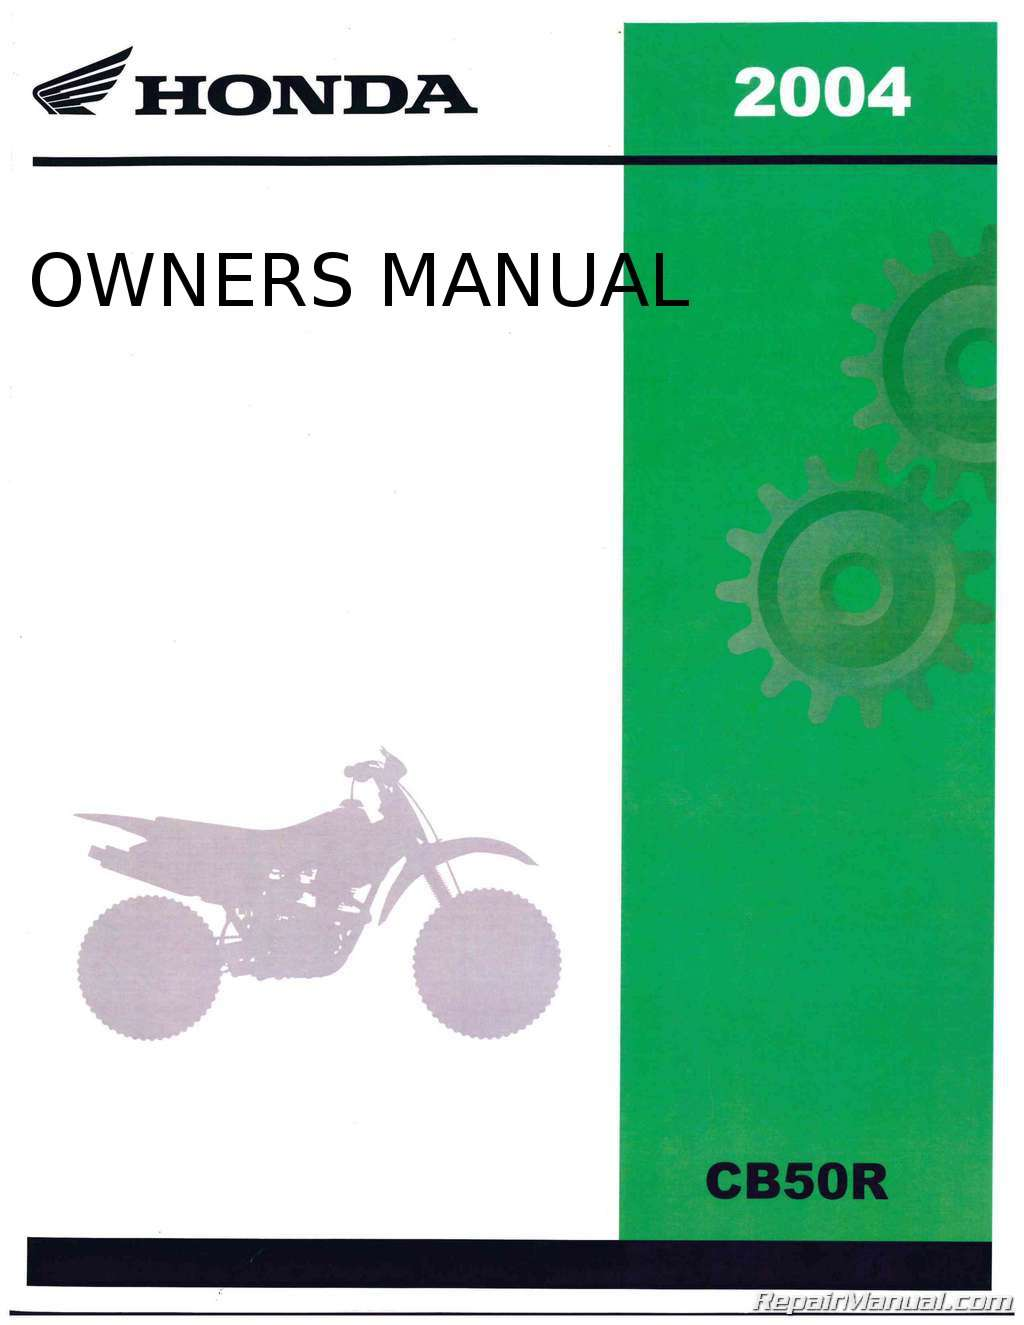 2004 Honda Cb50r Dream 50r Motorcycle Owners Manual